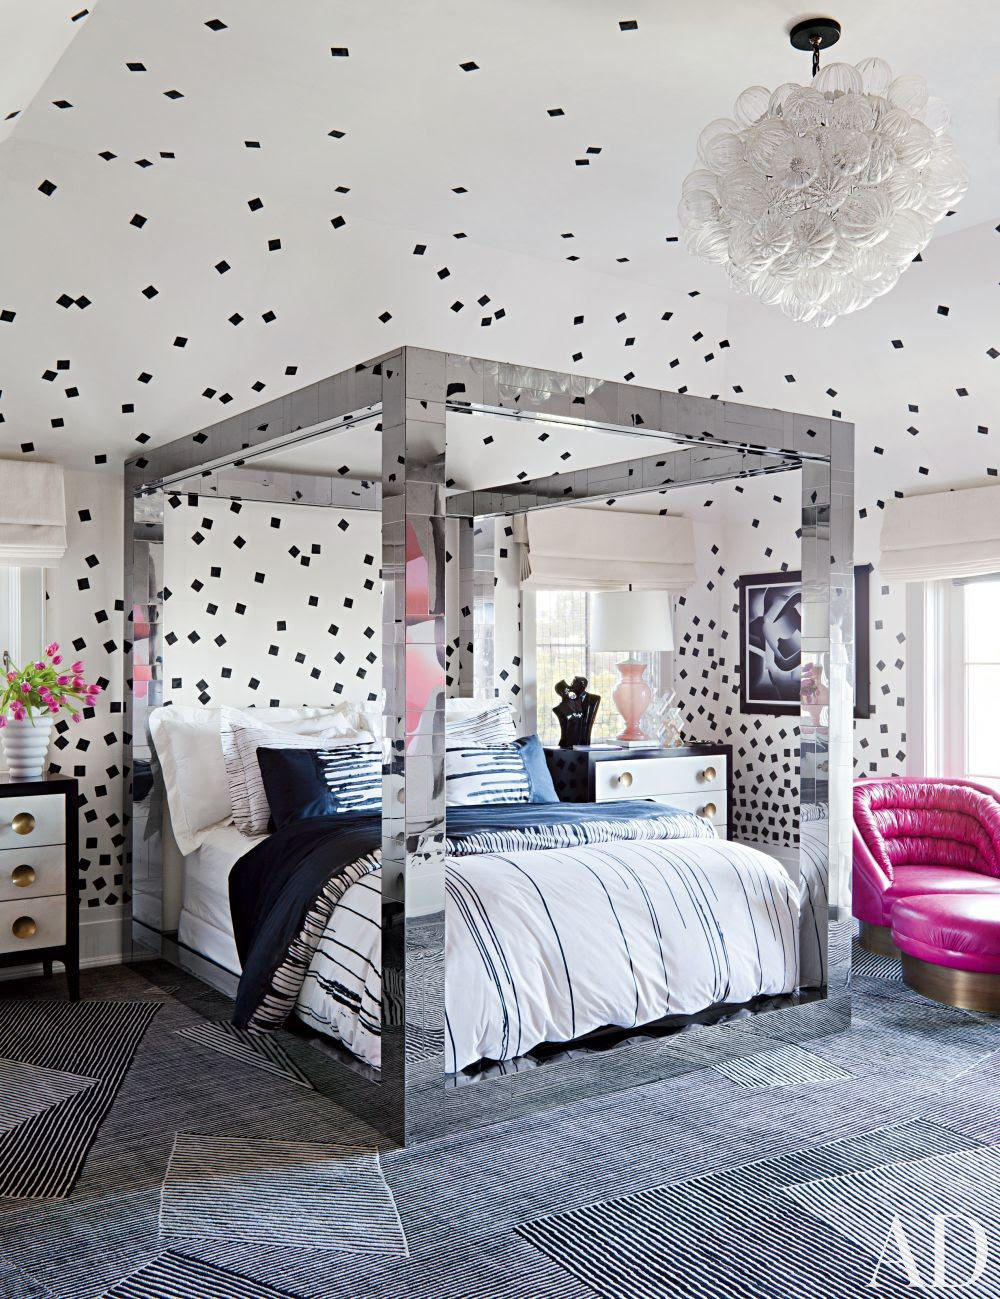 Outer Space Theme Bedroom Ideas - Safe Home Inspiration ...